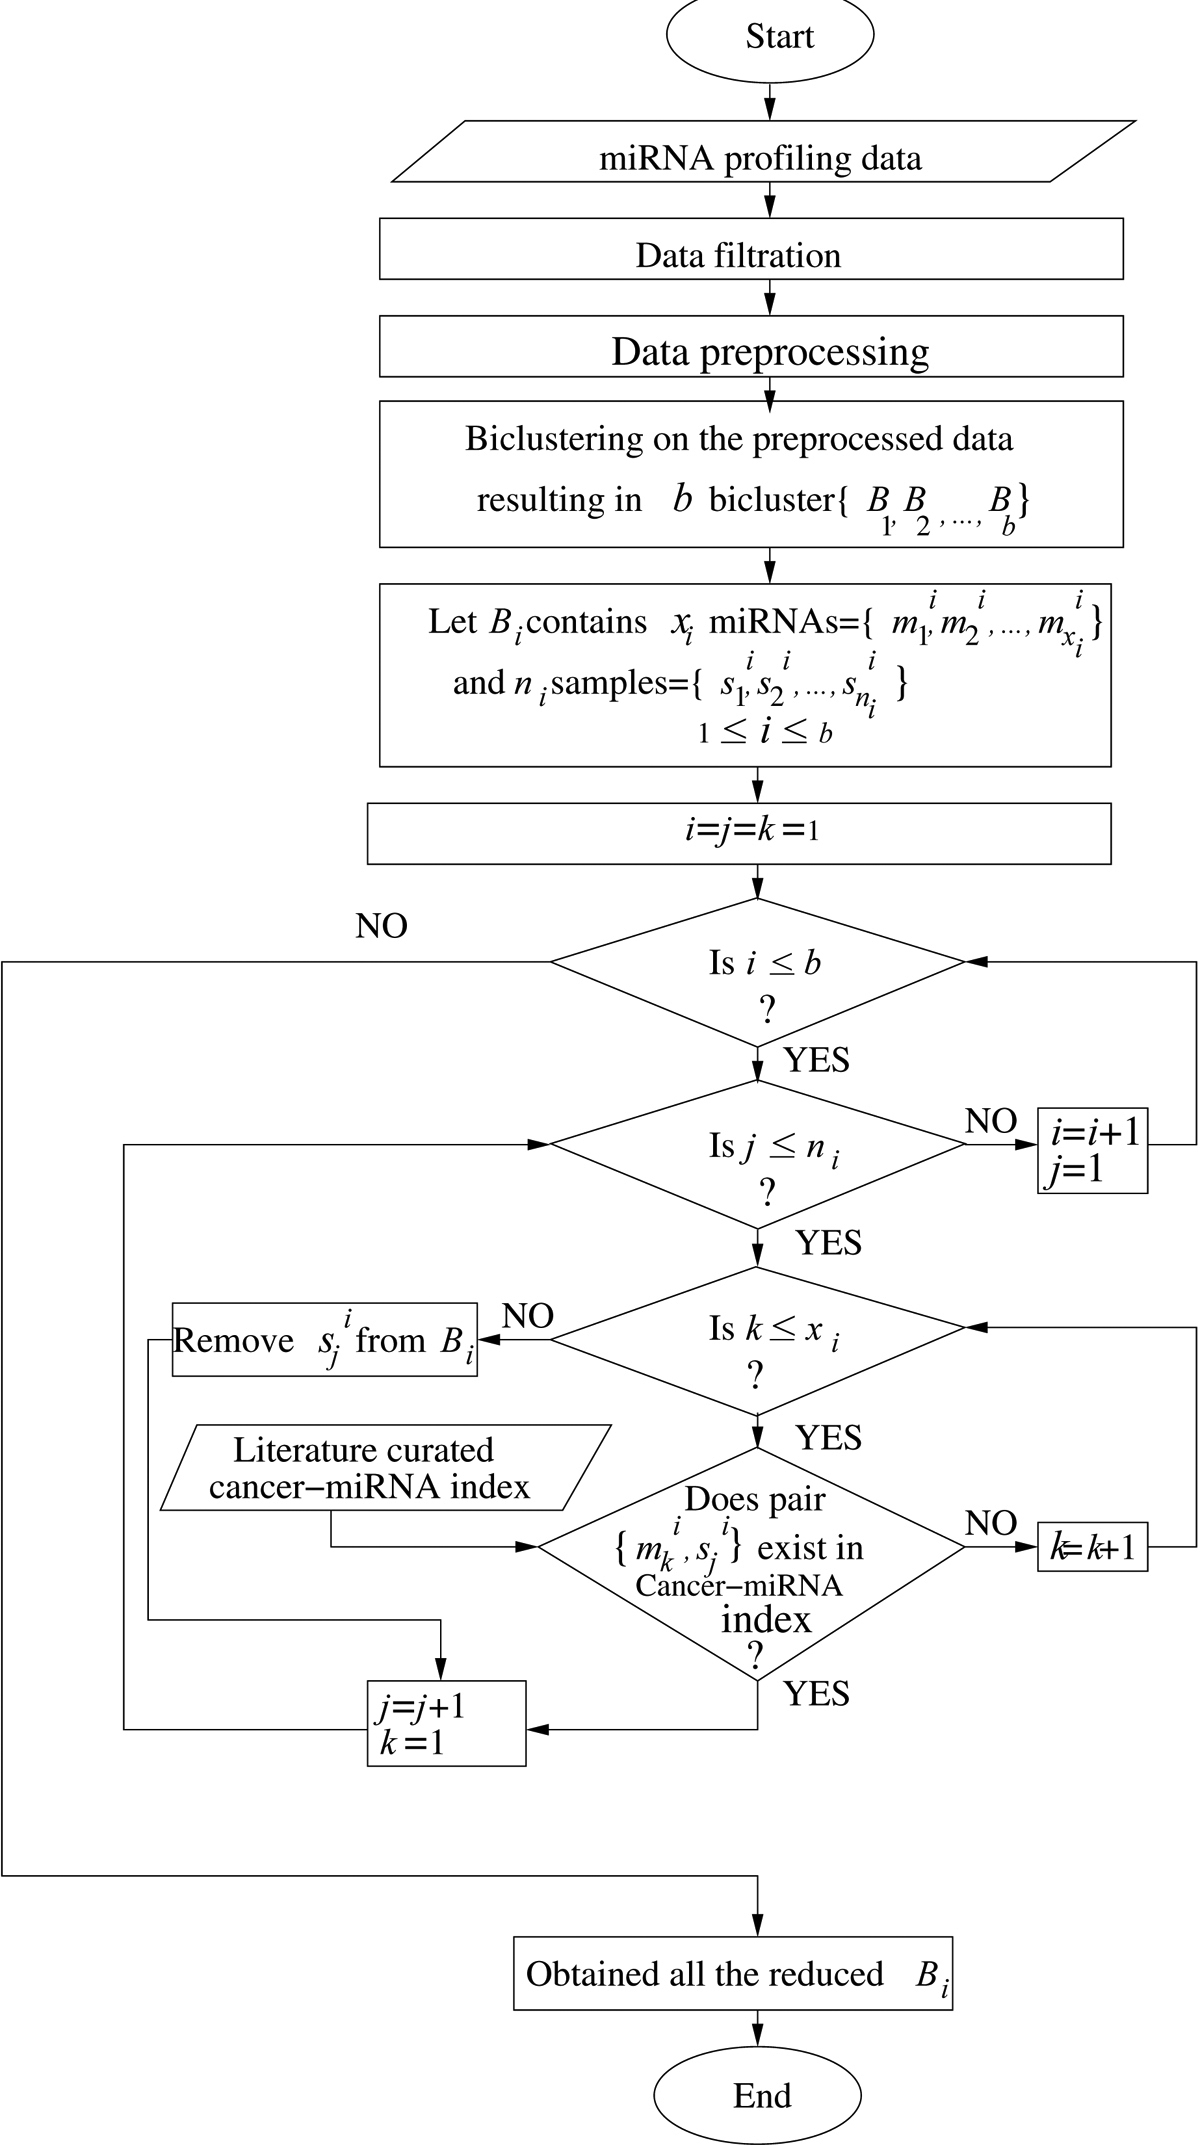 http://static-content.springer.com/image/art%3A10.1186%2F1471-2105-11-S1-S22/MediaObjects/12859_2010_Article_3972_Fig1_HTML.jpg